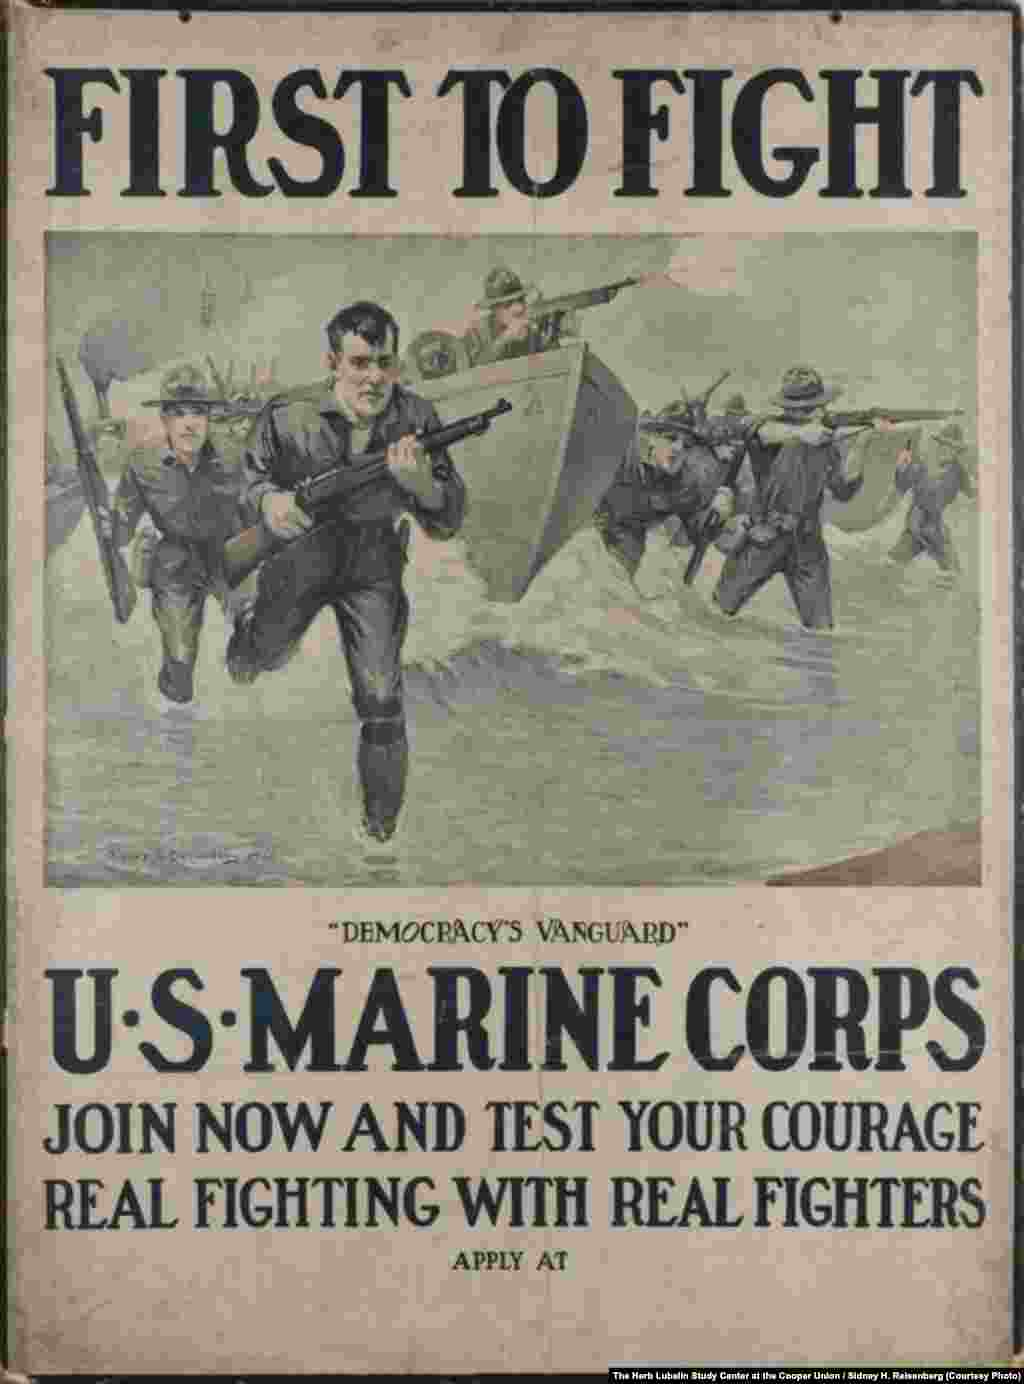 A U.S. Marine Corps recruitment poster from 1917